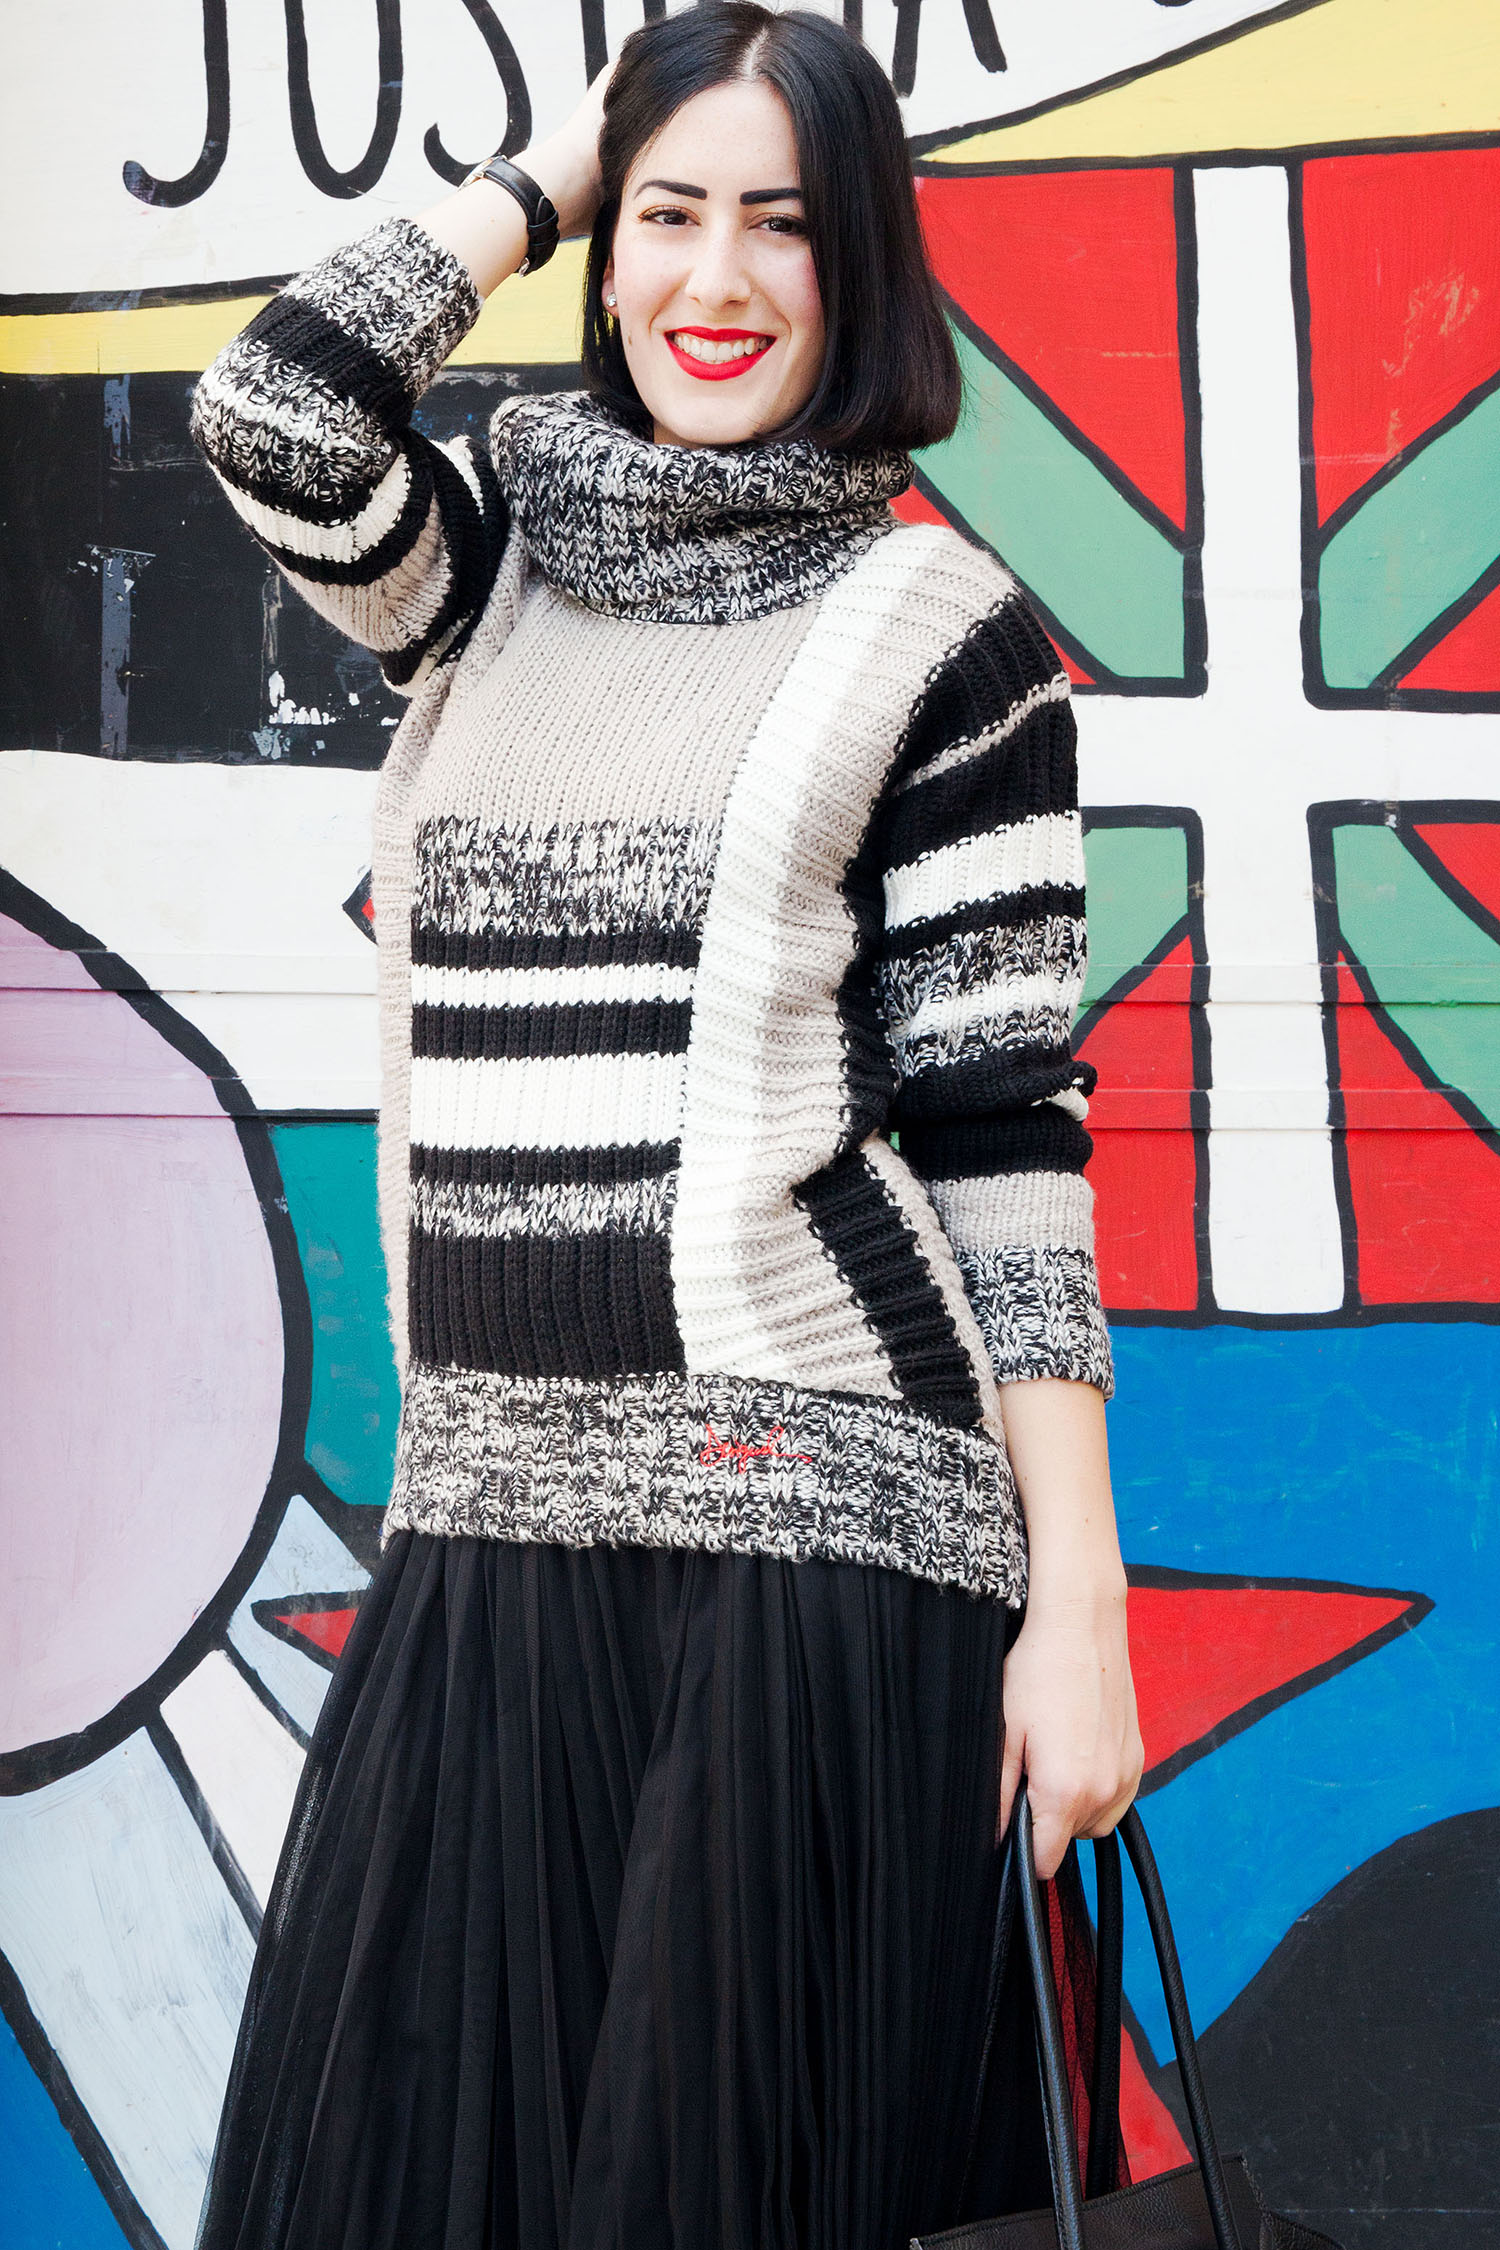 outfit-stile-urban-maglione-desigual-gonna-tulle-5